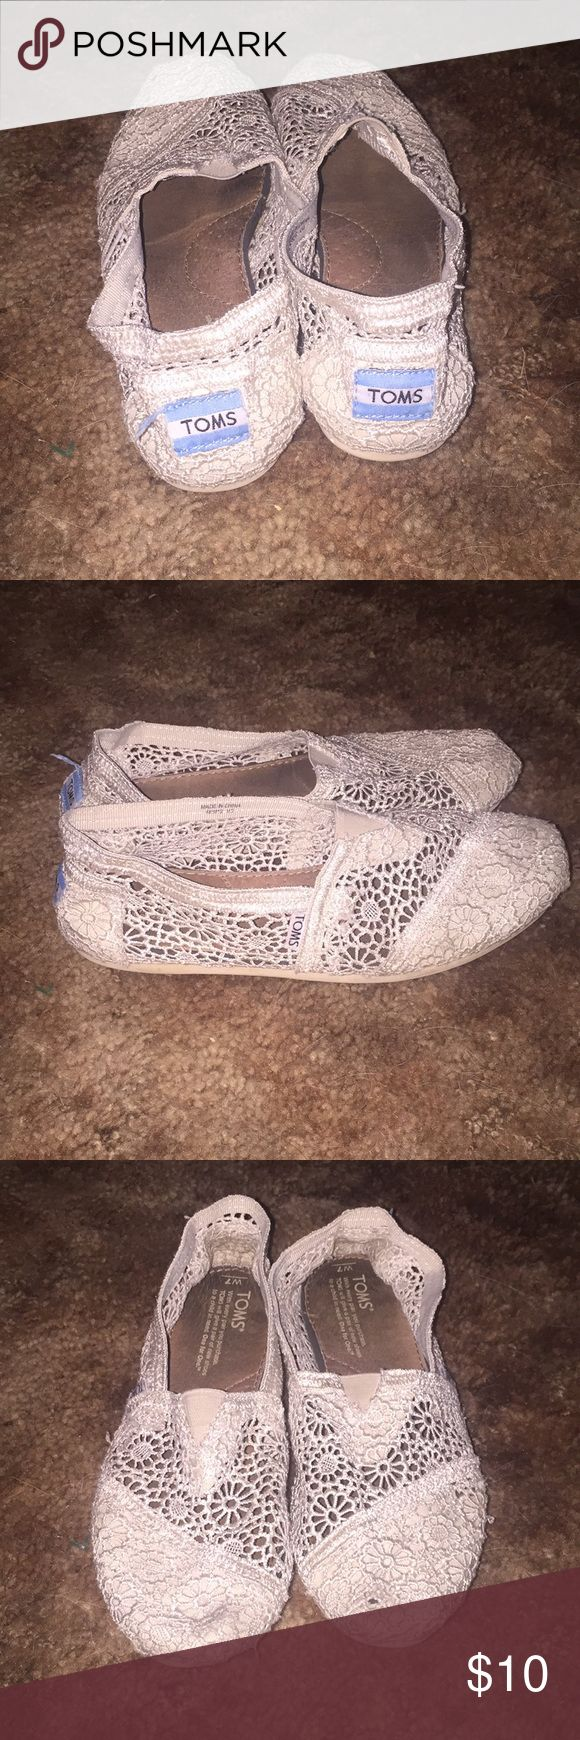 Toms shoes Lace toms. In good shape but have been worn Toms Shoes Sandals